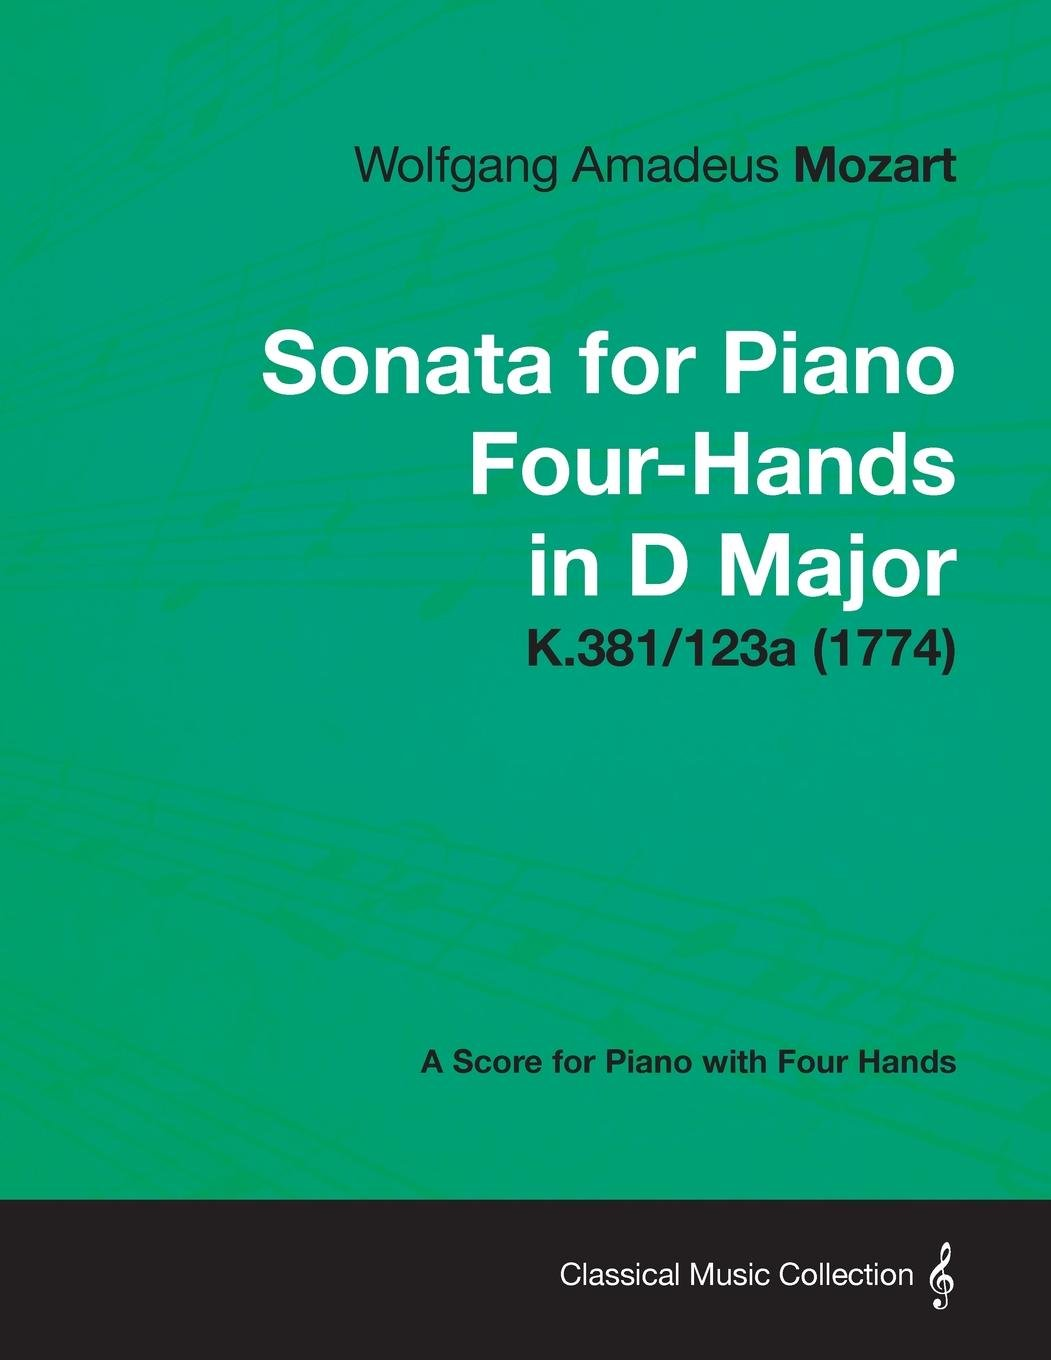 Download Sonata for Piano Four-Hands in D Major - A Score for Piano with Four Hands K.381/123a (1774) pdf